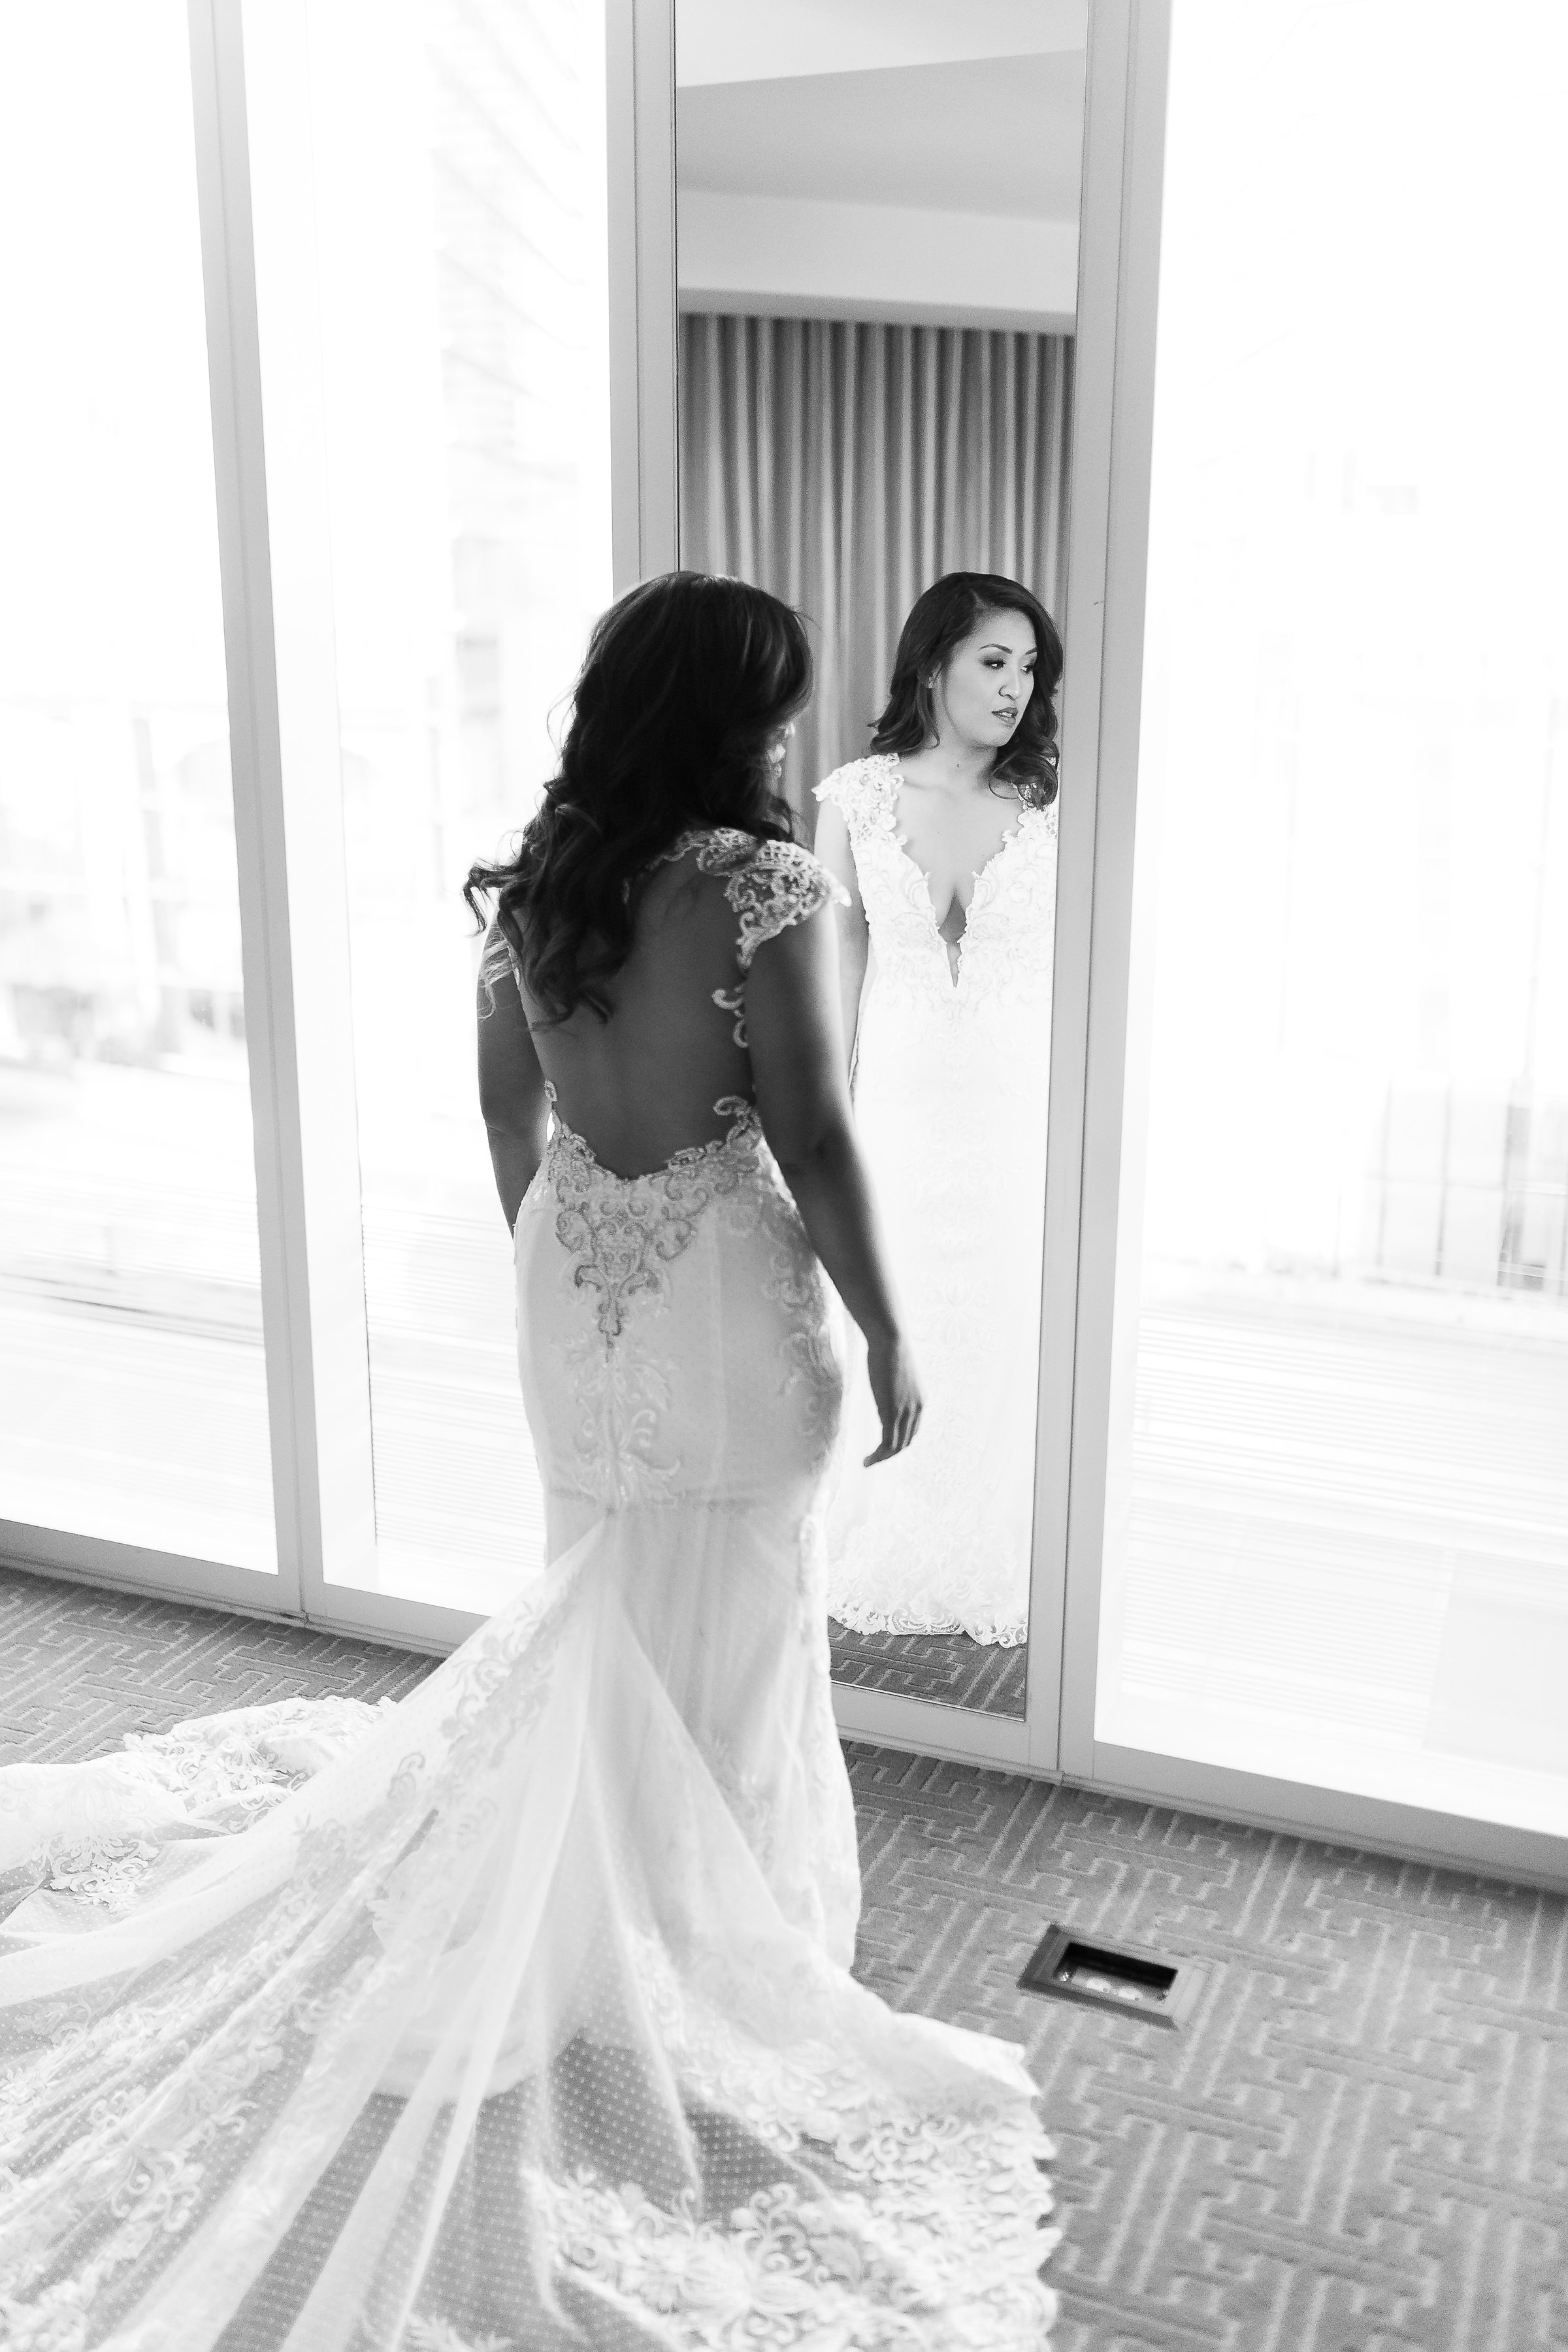 Bride in backless lace wedding dress.Wedding Planner: Andrea Eppolito Events    Photography  Brian Leahy    Videography  HOO Films    Venue & Catering:  Mandarin Oriental  / Waldorf Astoria   Floral & Decor: Destinations by Design    Lighting: LED Unplugged    Music:  DJ Breeze II    Hair & Make Up: Amelia C & Co    Invitations by  Bliss & Bone    Menu and Escort Cards by  Meldeen